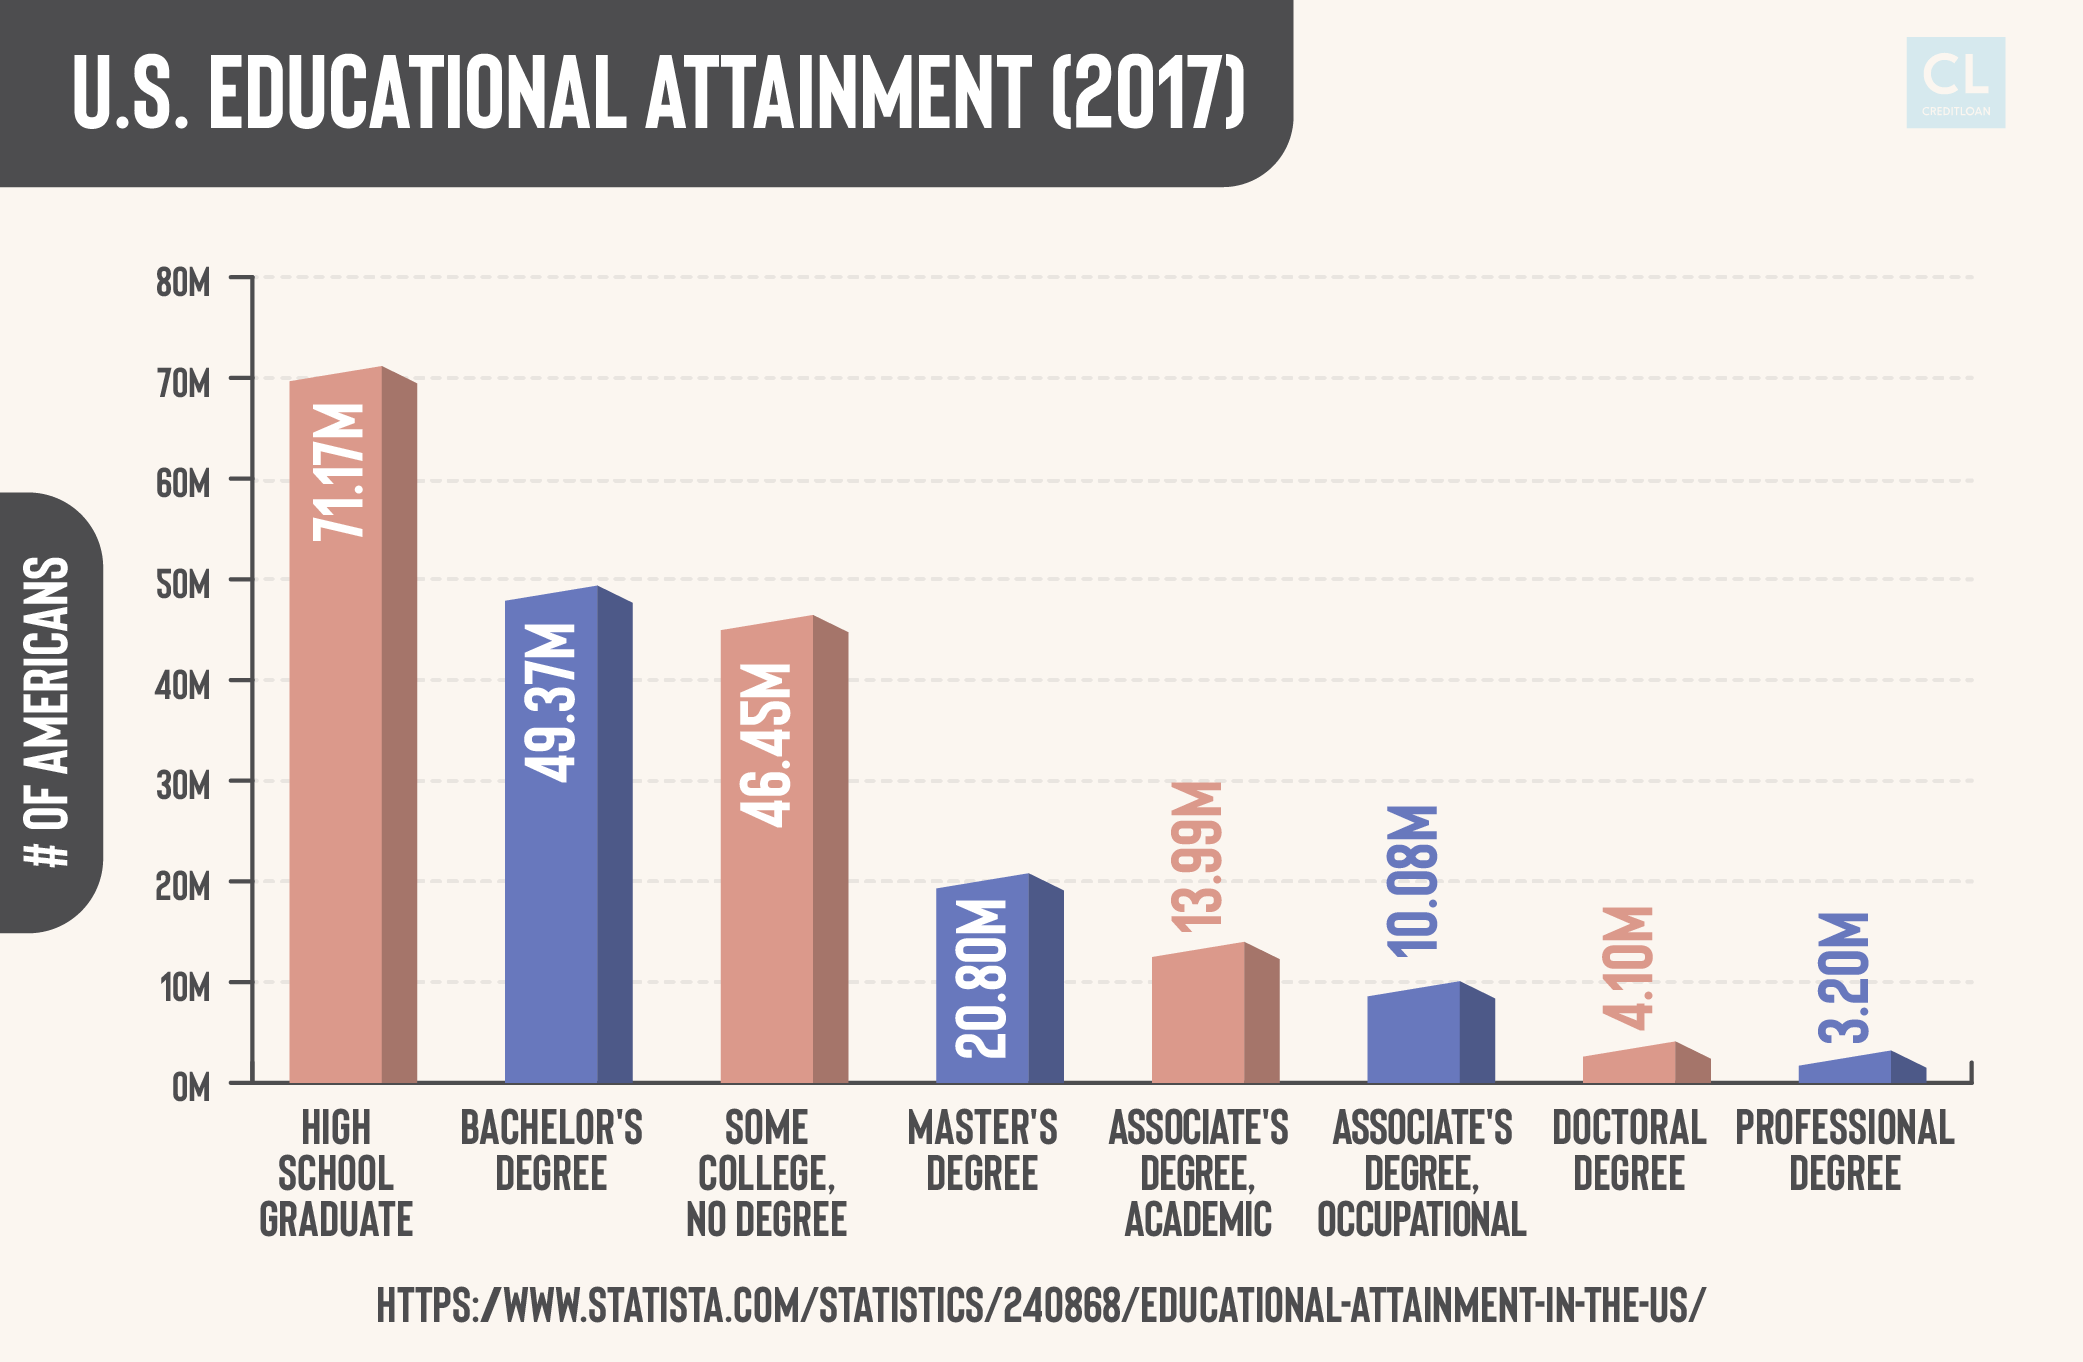 U.S. Educational Attainment 2017